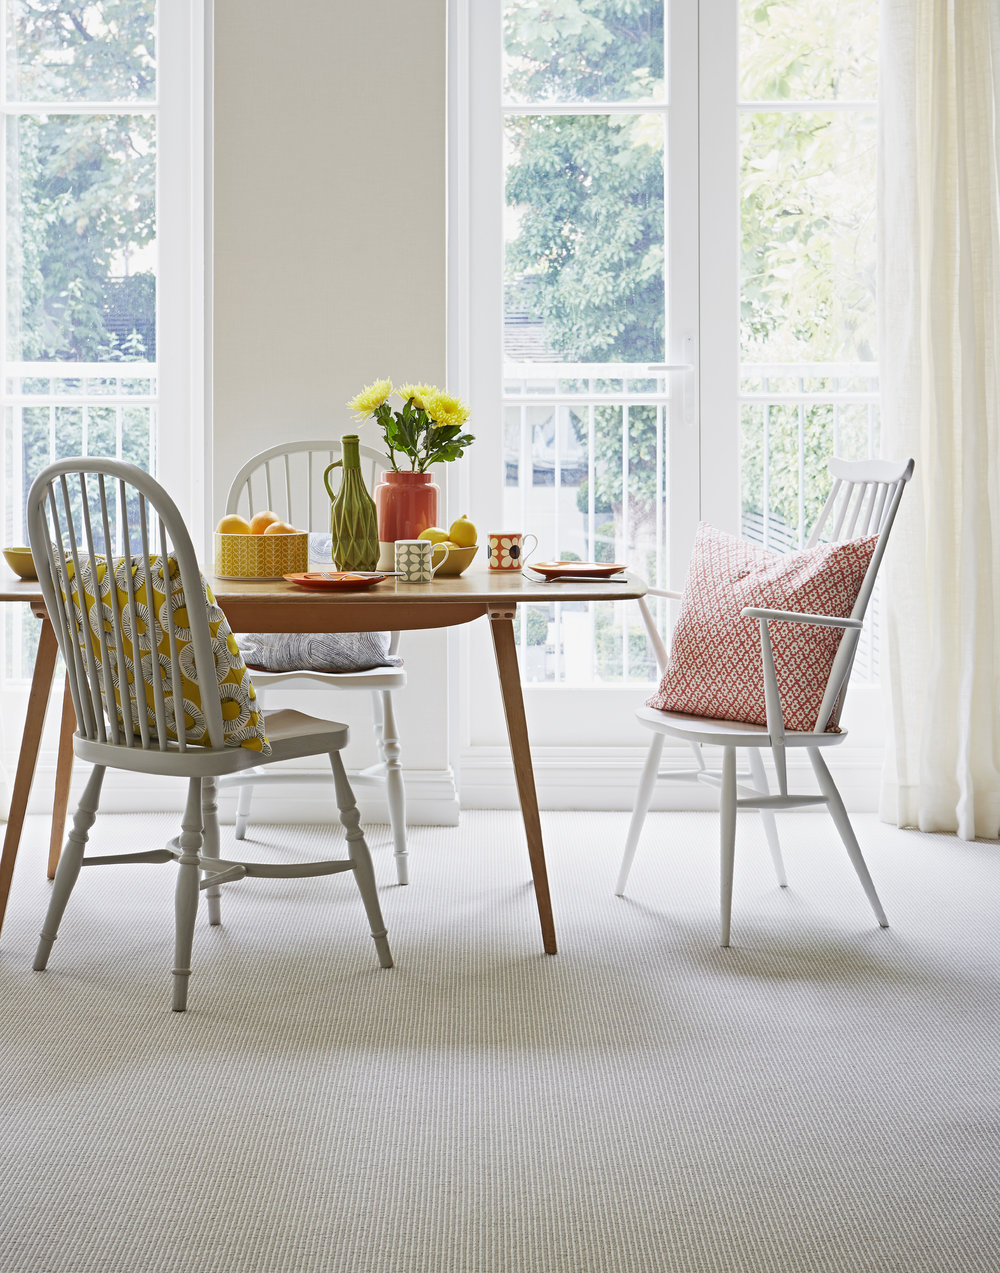 Pampas Nordic Stripe wool carpet by Kersaint Cobb